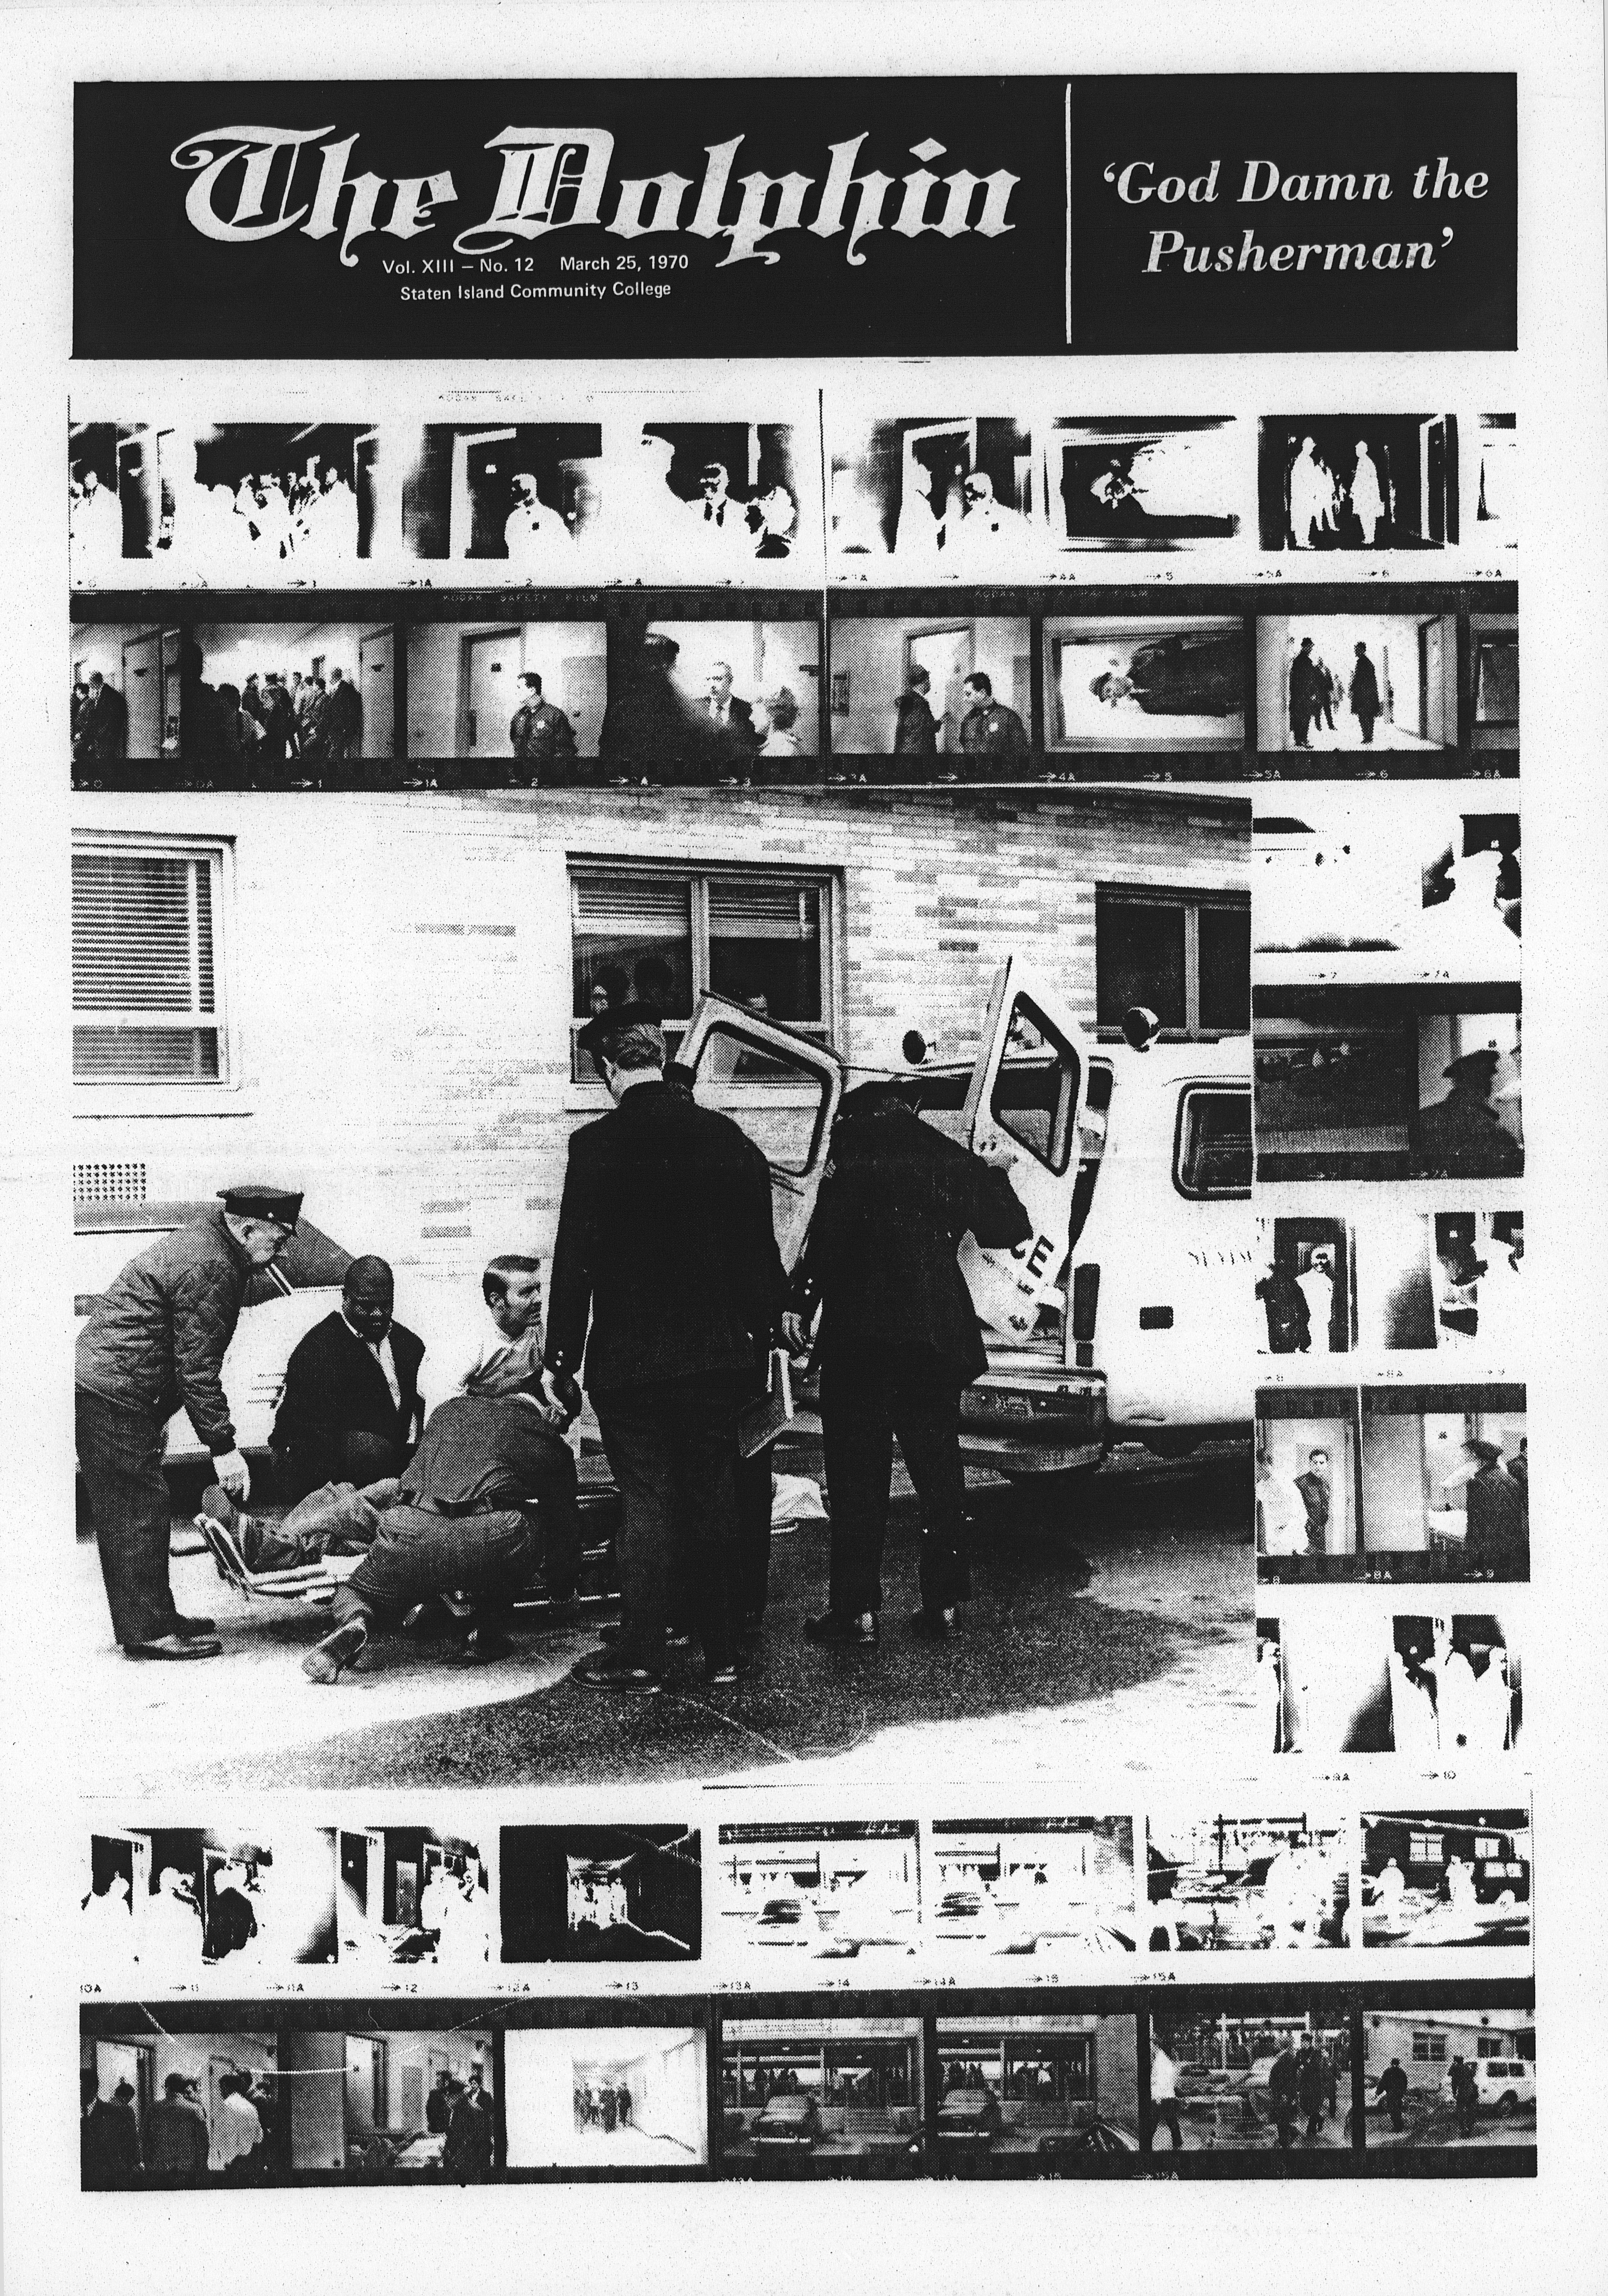 Cover image of The Dolphin, volume 13, issue 12; March 25th, 1970; Staten Island Community College. Headline: 'God Damn the Pusherman'. Black and white photograph of a person on a stretcher being placed inside a police van.